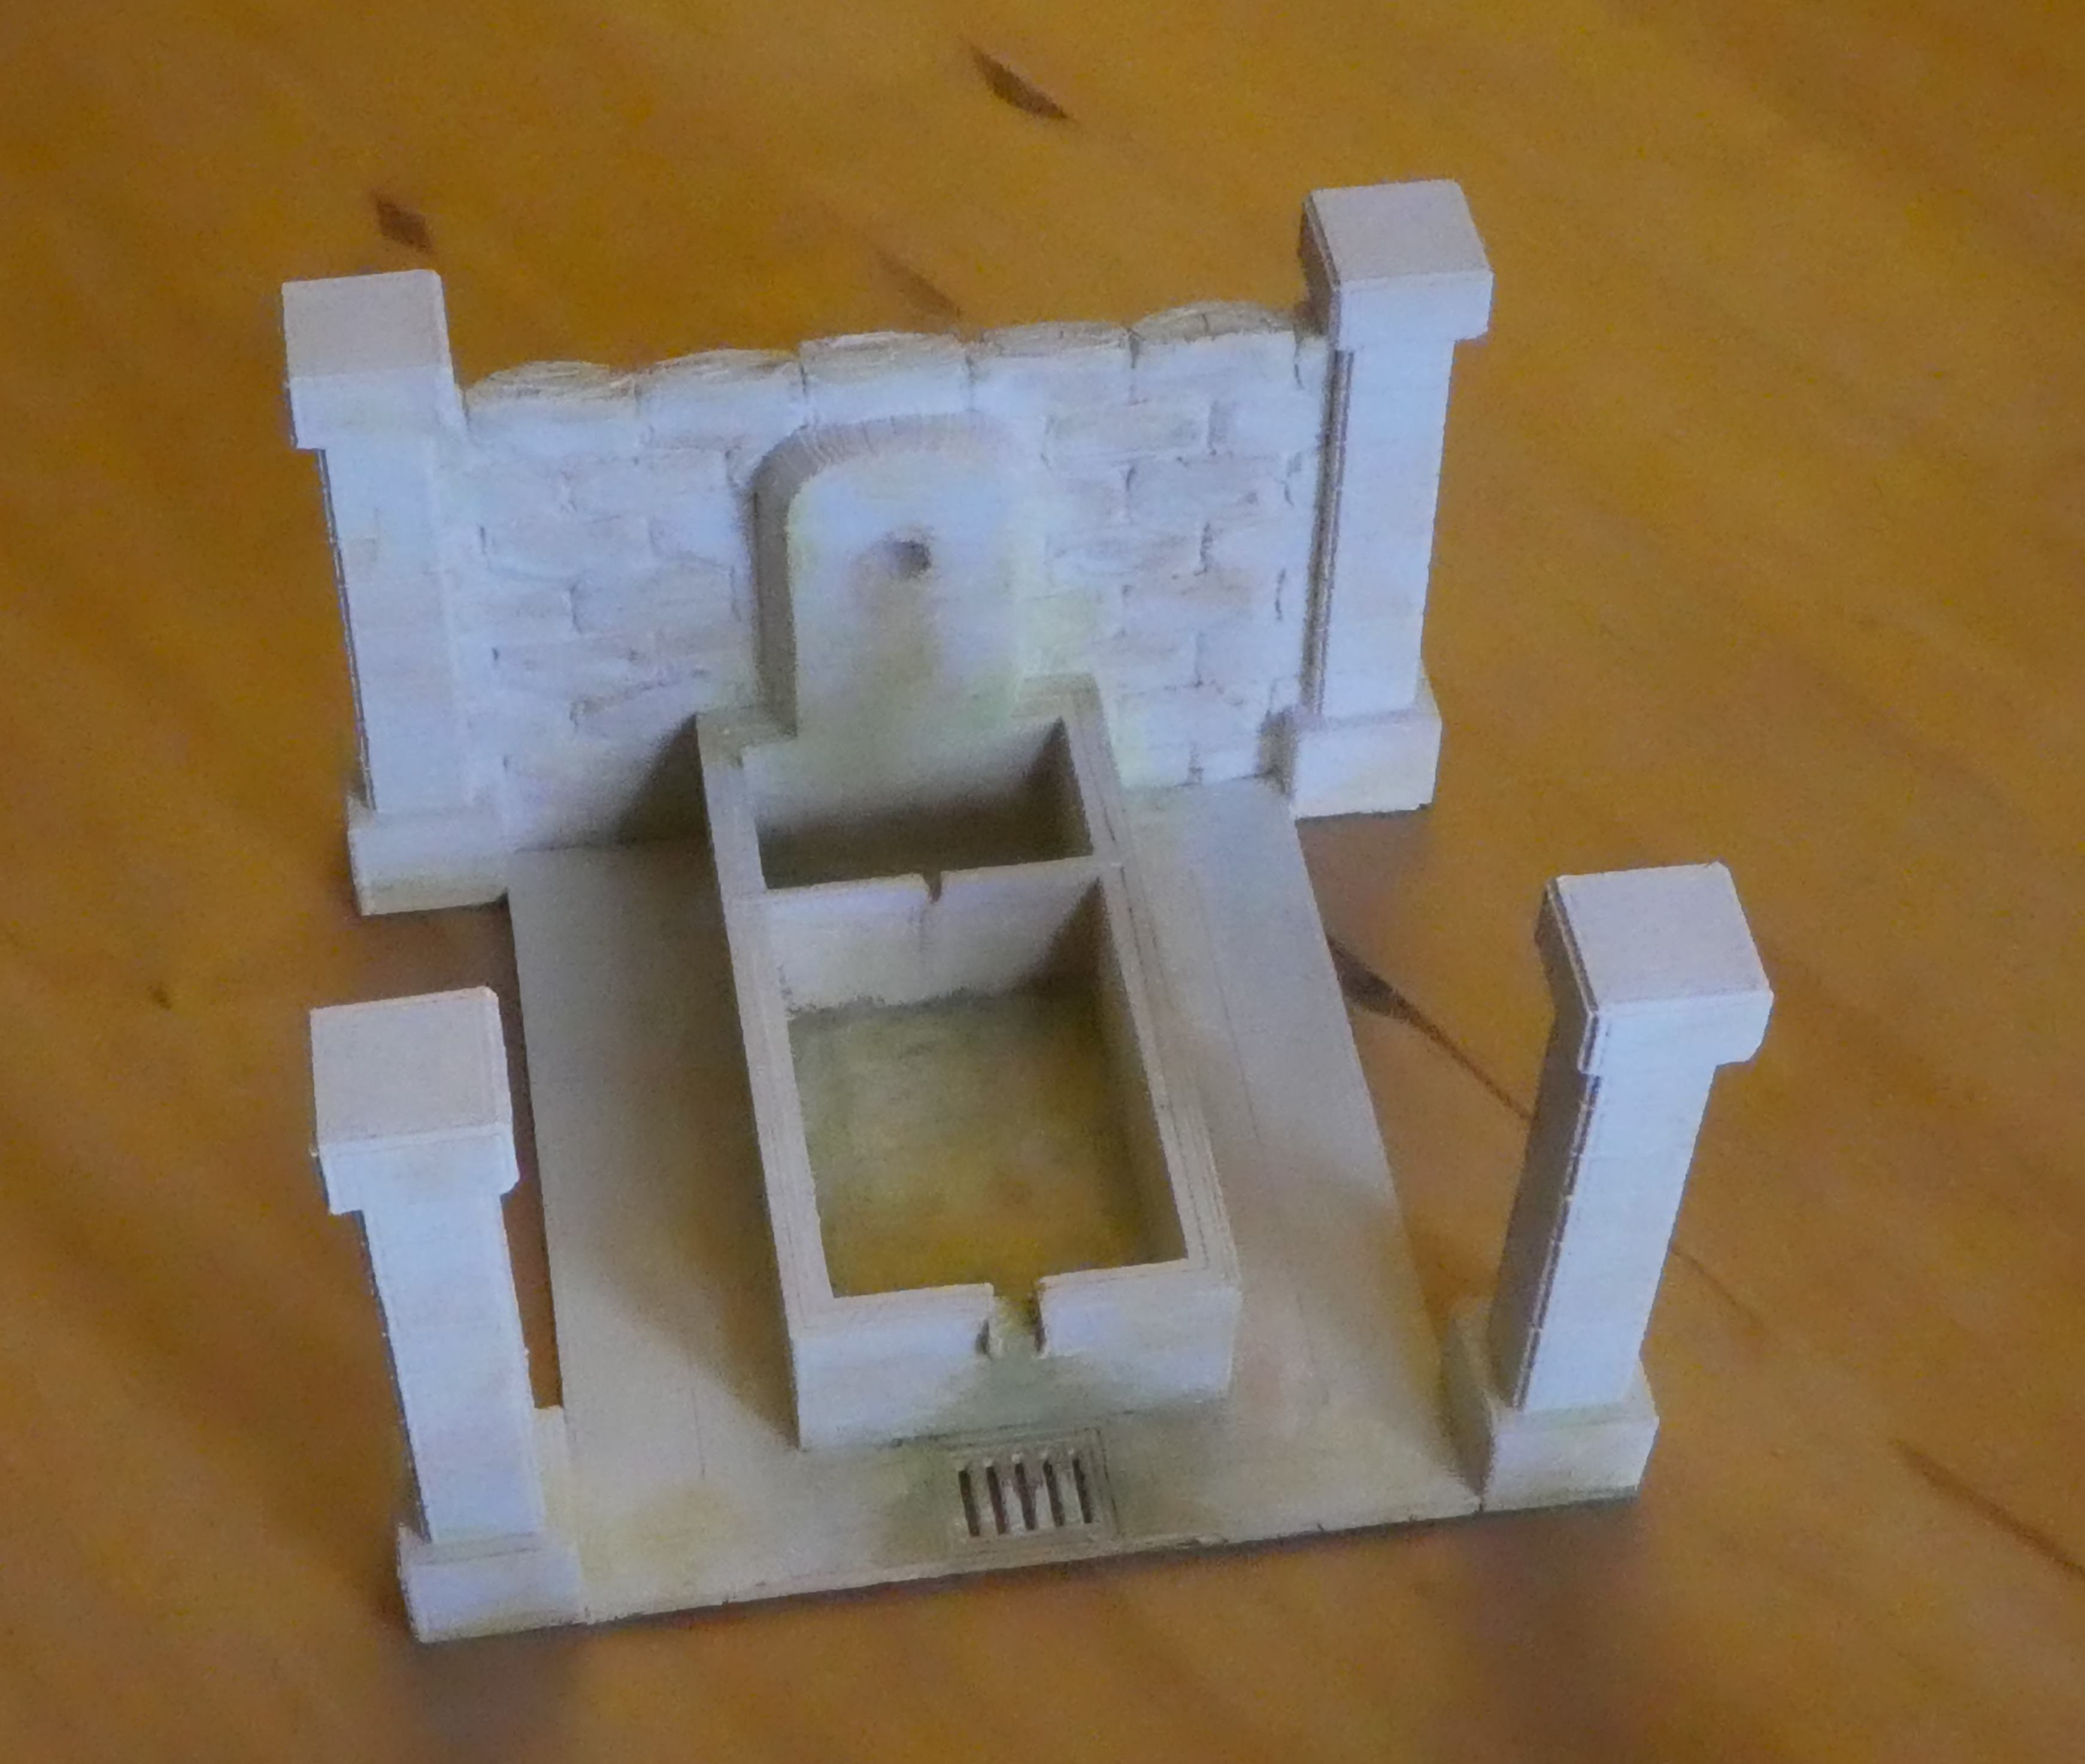 P1130424.JPG Download free STL file Provencal wash-house • 3D printable object, phipo333